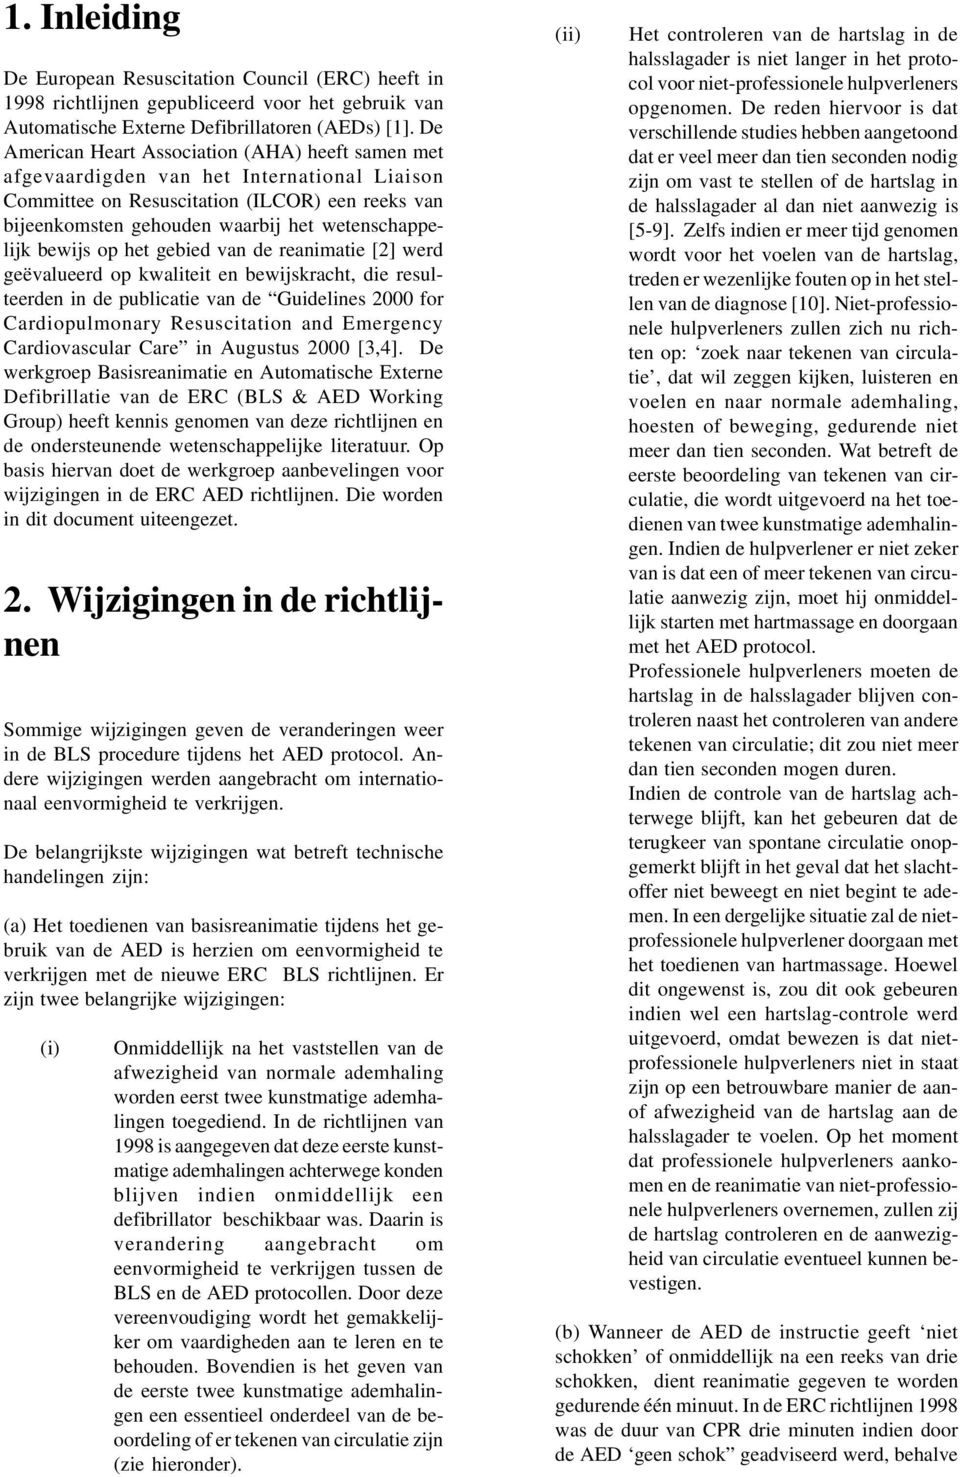 bewijs op het gebied van de reanimatie [2] werd geëvalueerd op kwaliteit en bewijskracht, die resulteerden in de publicatie van de Guidelines 2000 for Cardiopulmonary Resuscitation and Emergency